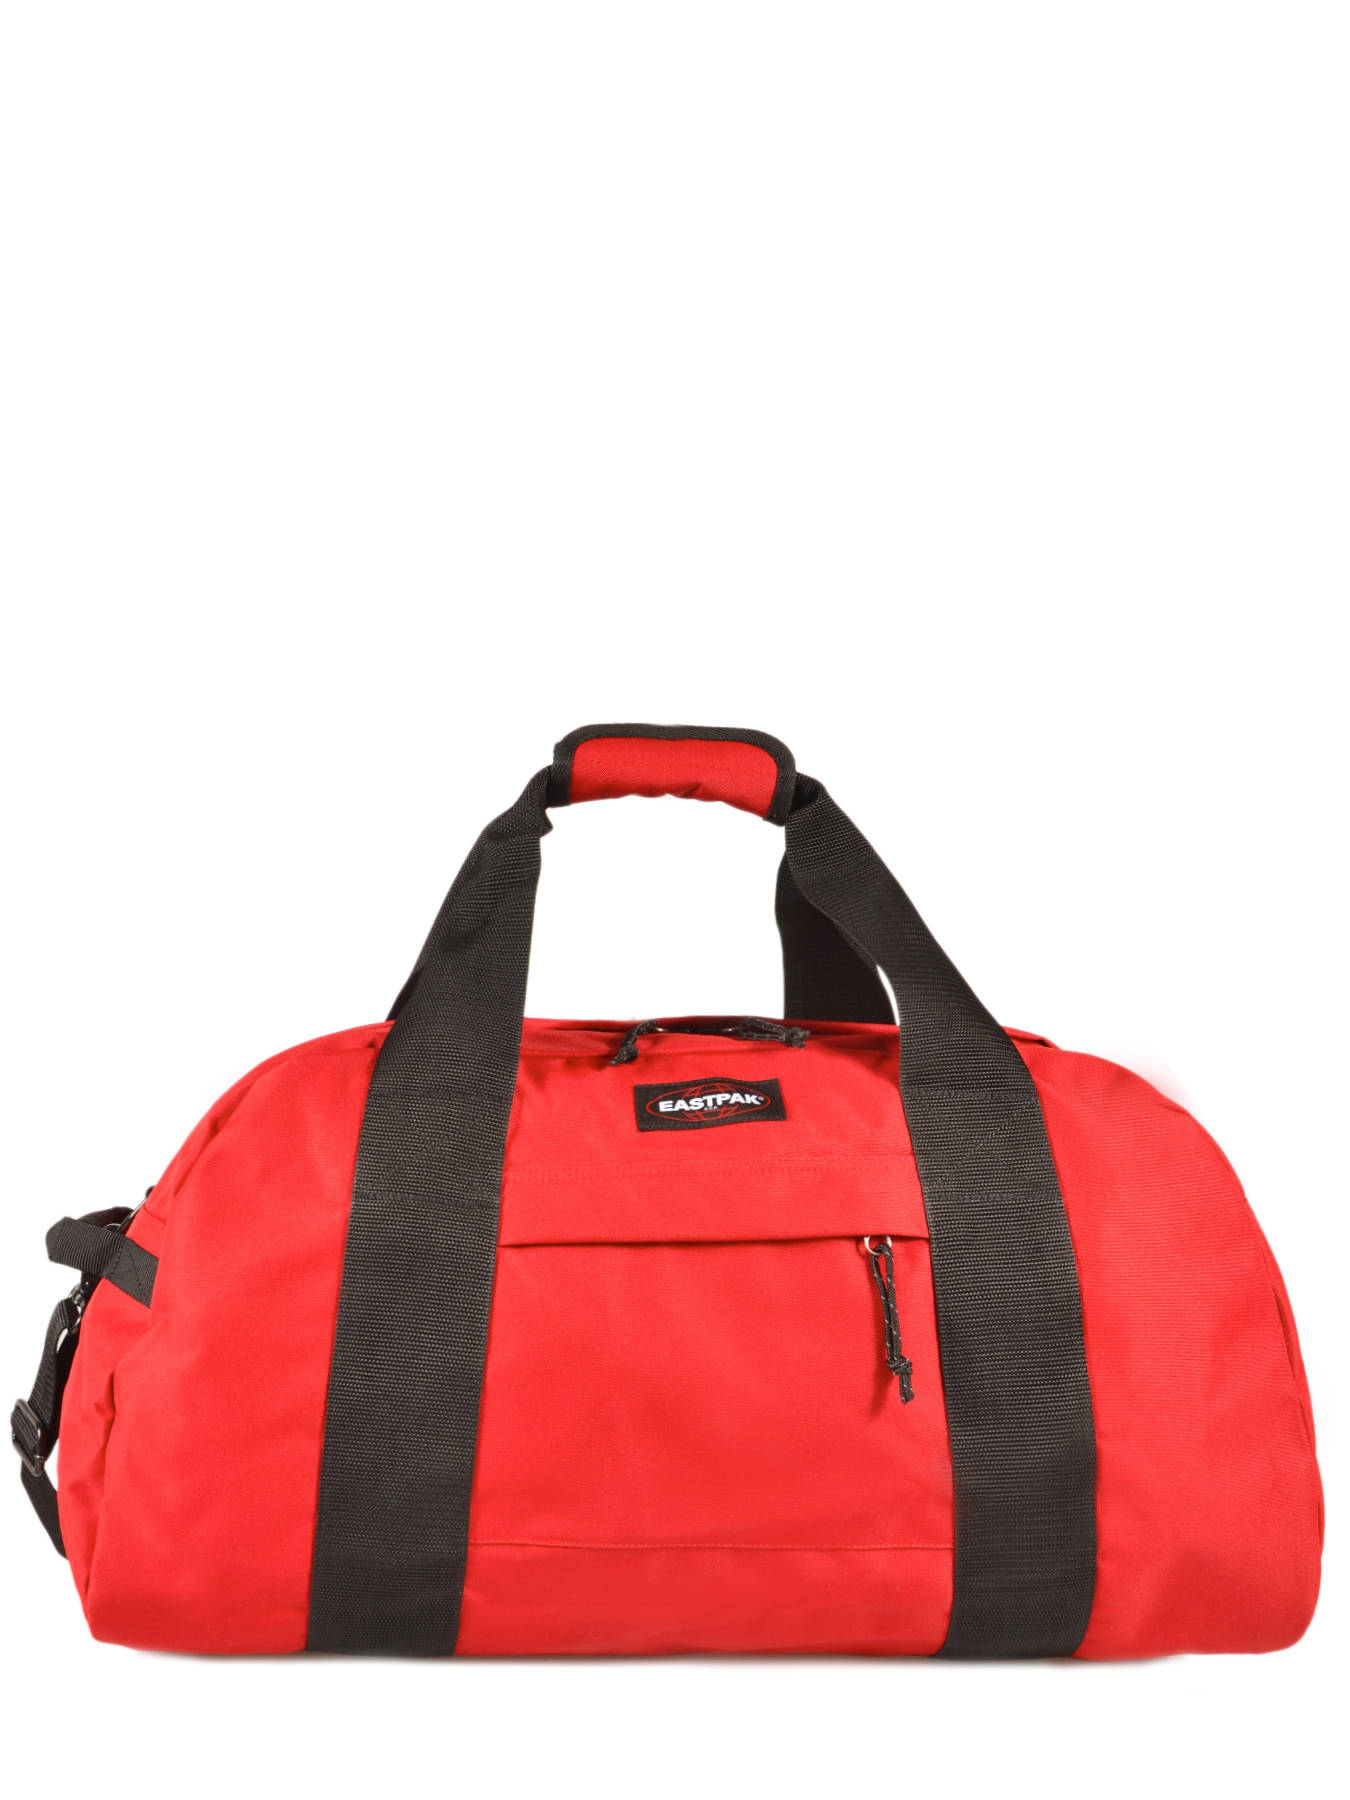 Garantie Des Sacs Eastpak : Sac de voyage eastpak pbg authentic luggage apple pick red